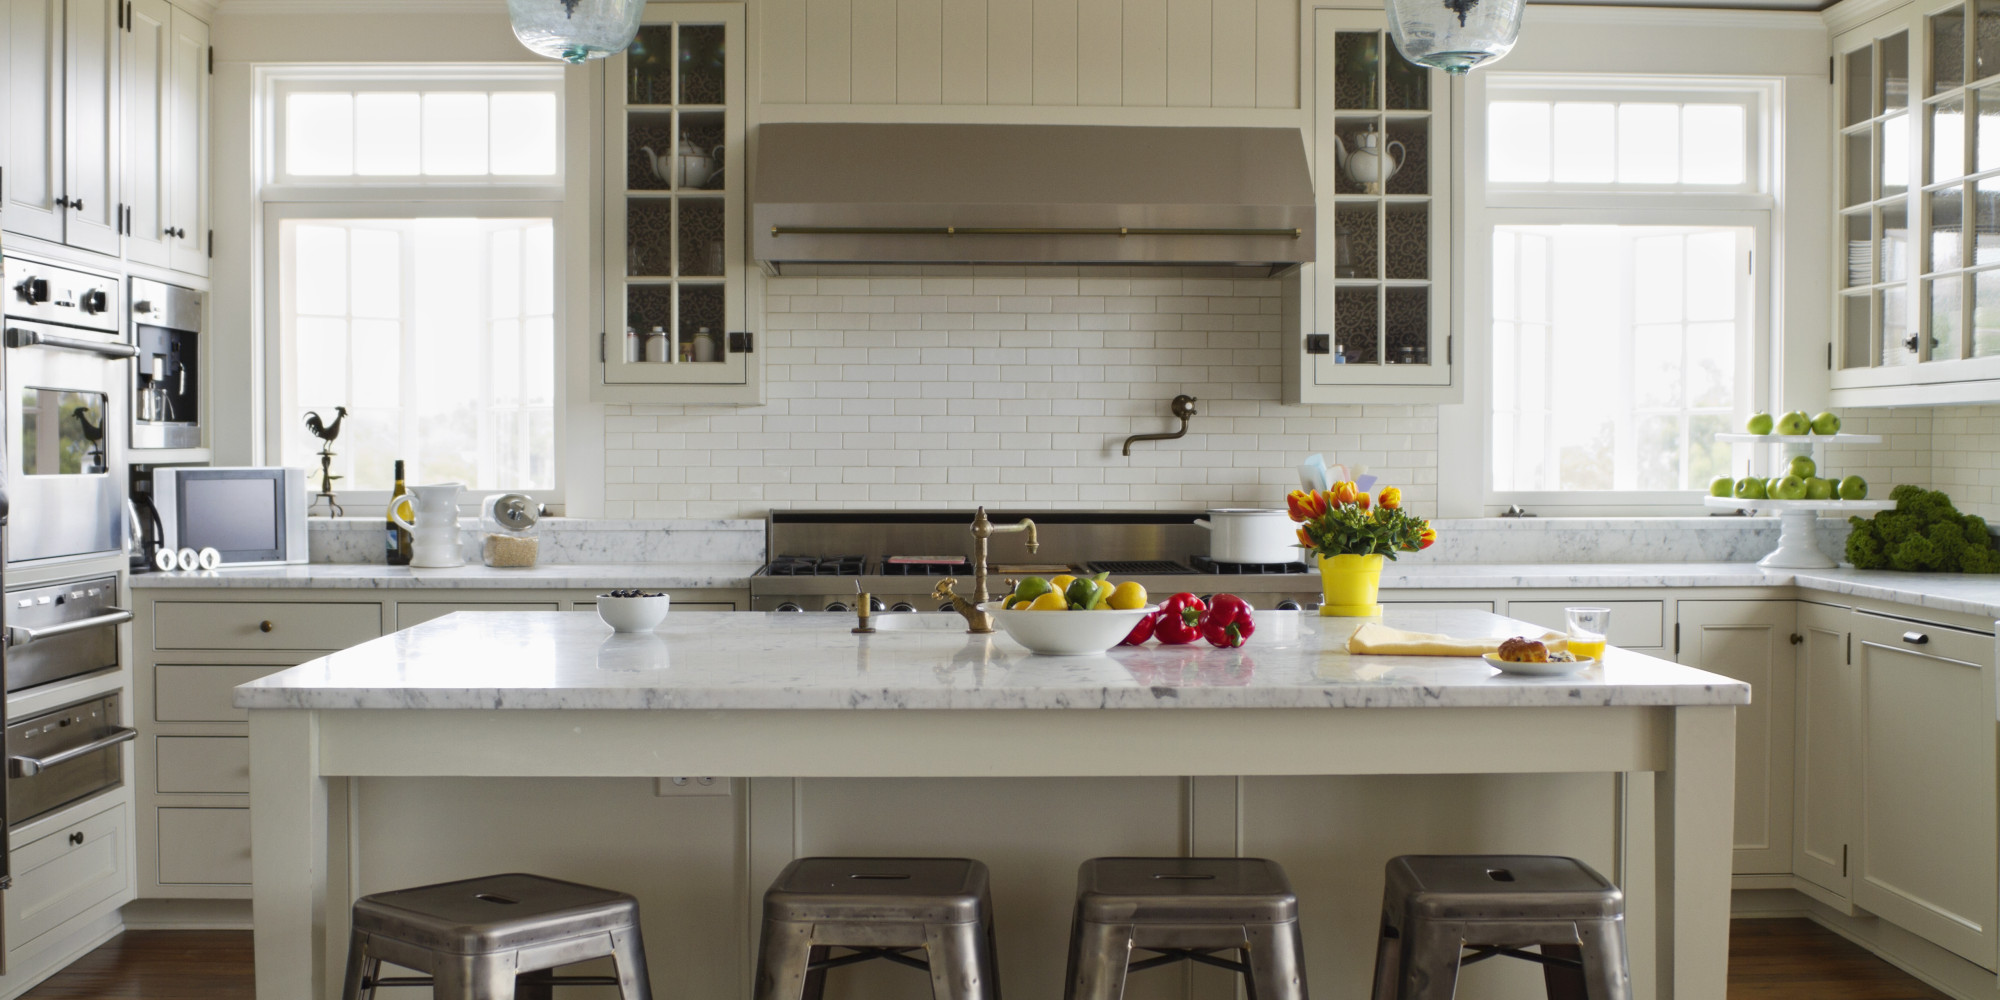 The 3 biggest kitchen trends of 2014 might surprise you Best kitchen remodels